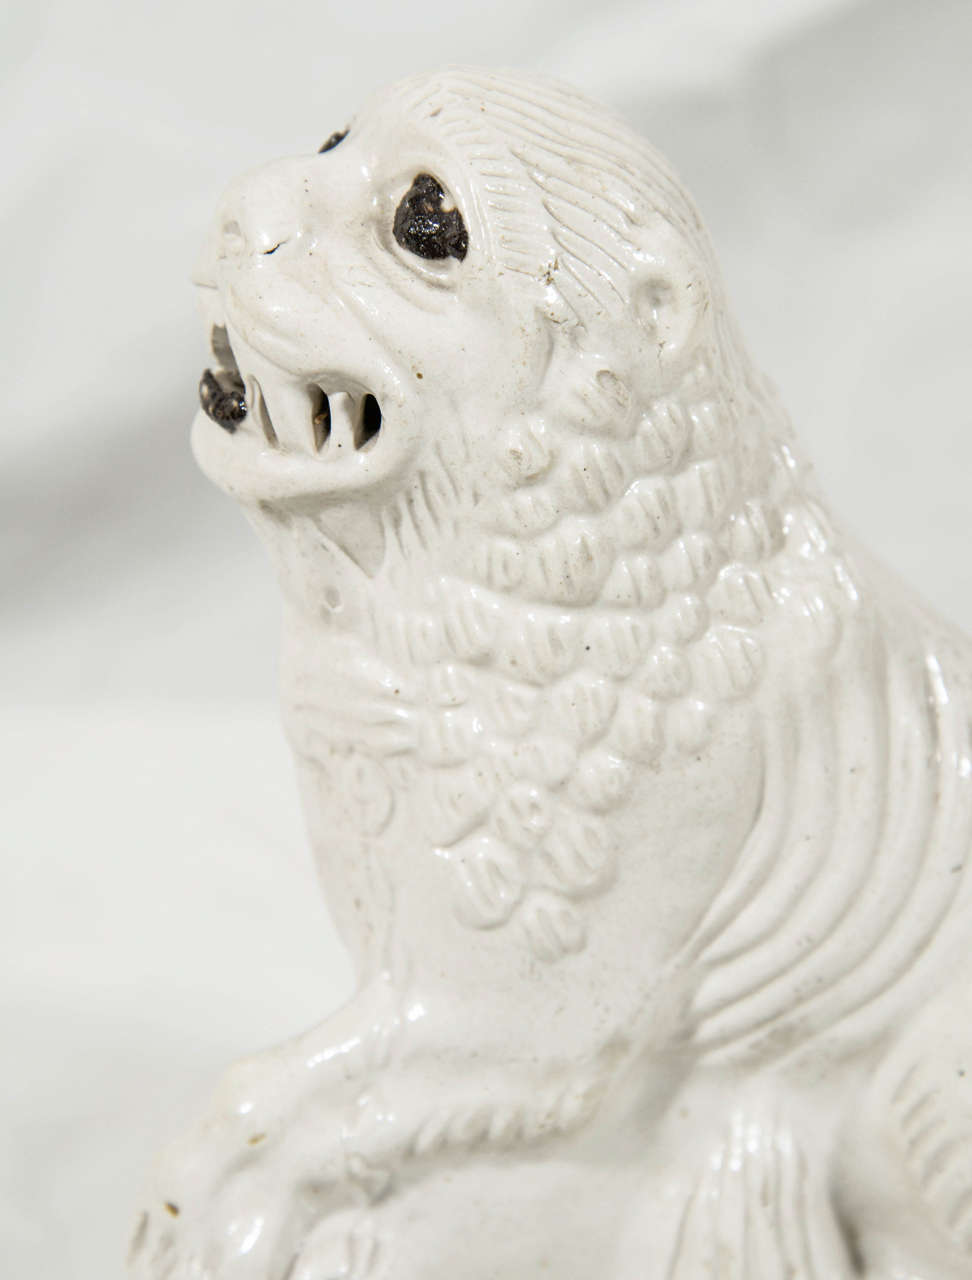 Salt glazed pottery figure of a lion made in England in the mid-18th Century. The body is covered in a beautiful smoky gray colored salt glaze. The figure was slip-cast and has sharp definition in the molded mane, and ribs. The notable eyes and